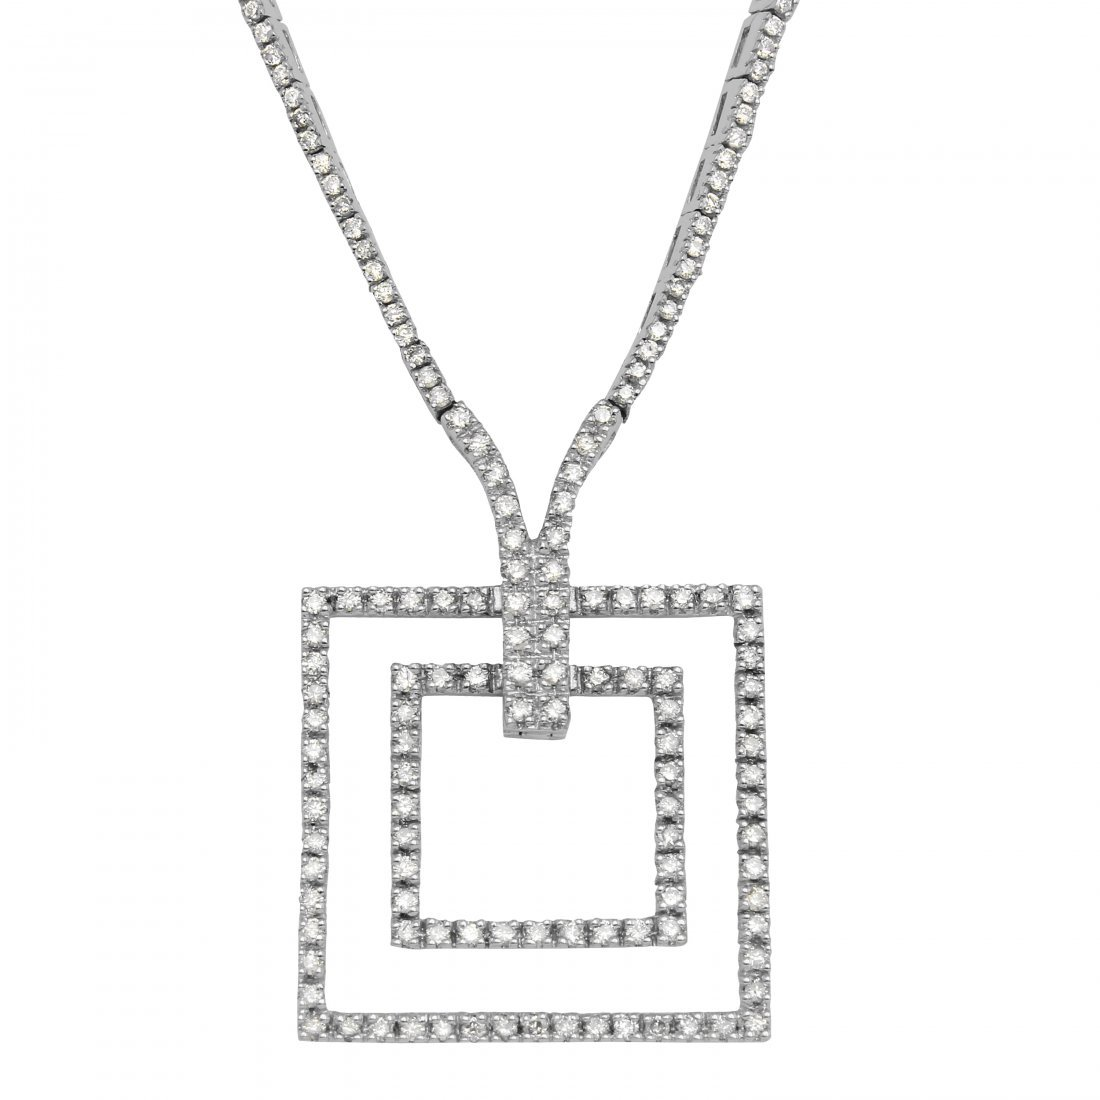 Genuine 2.25 TCW 14K White Gold Ladies Necklace